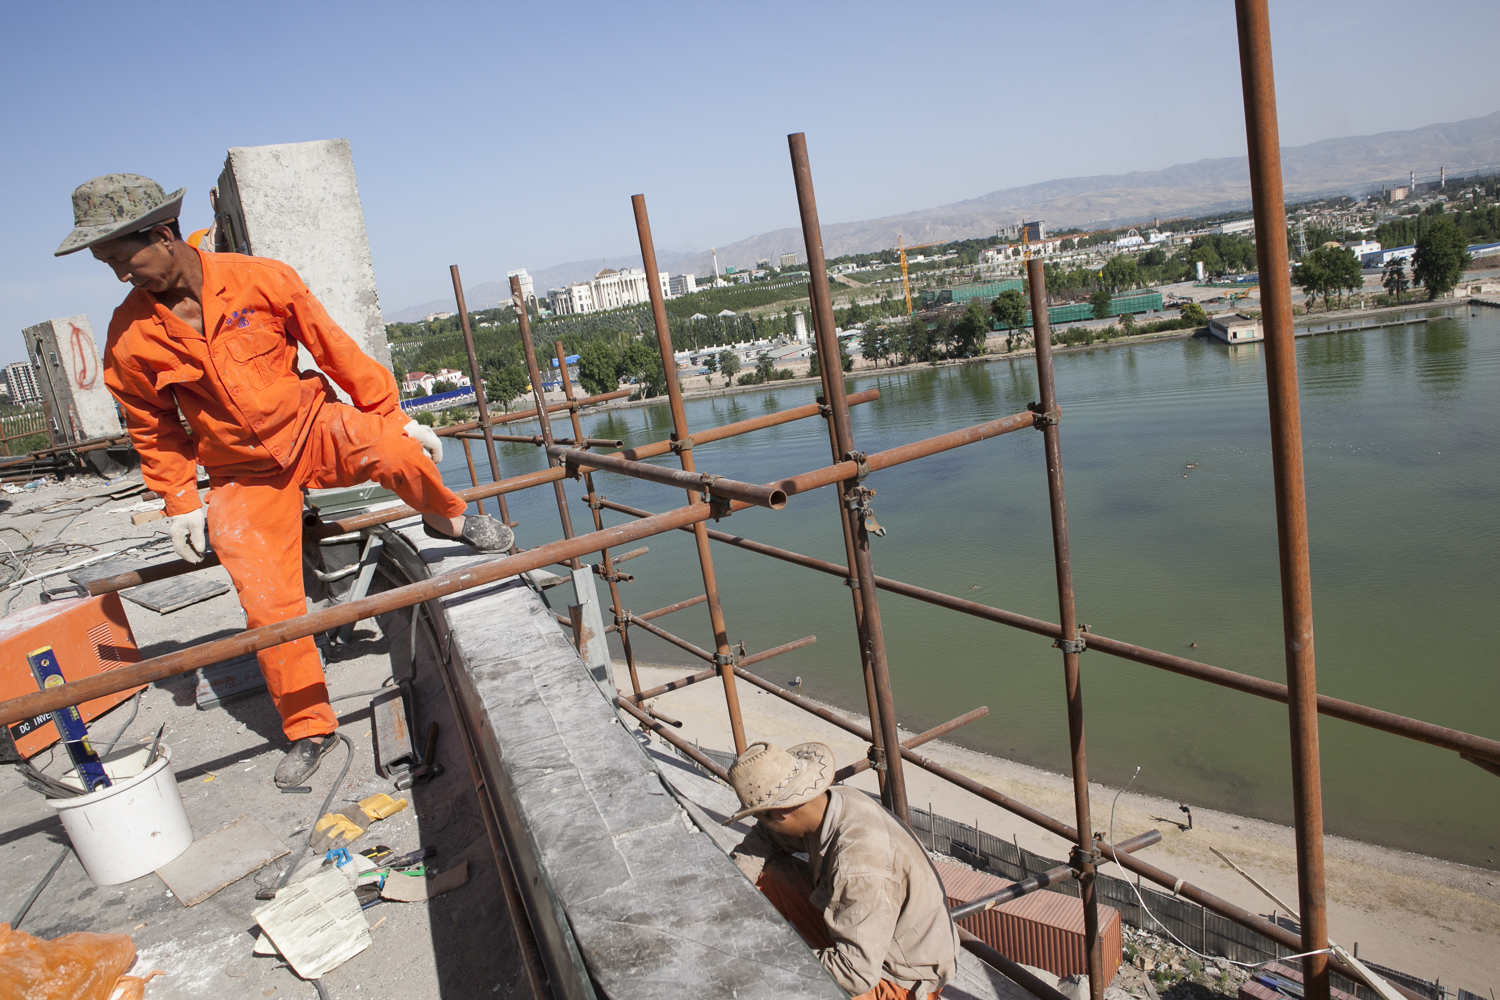 Chinese laborers work on a palace in Dushanbe, Tajikistan. (Photo: David Trilling)